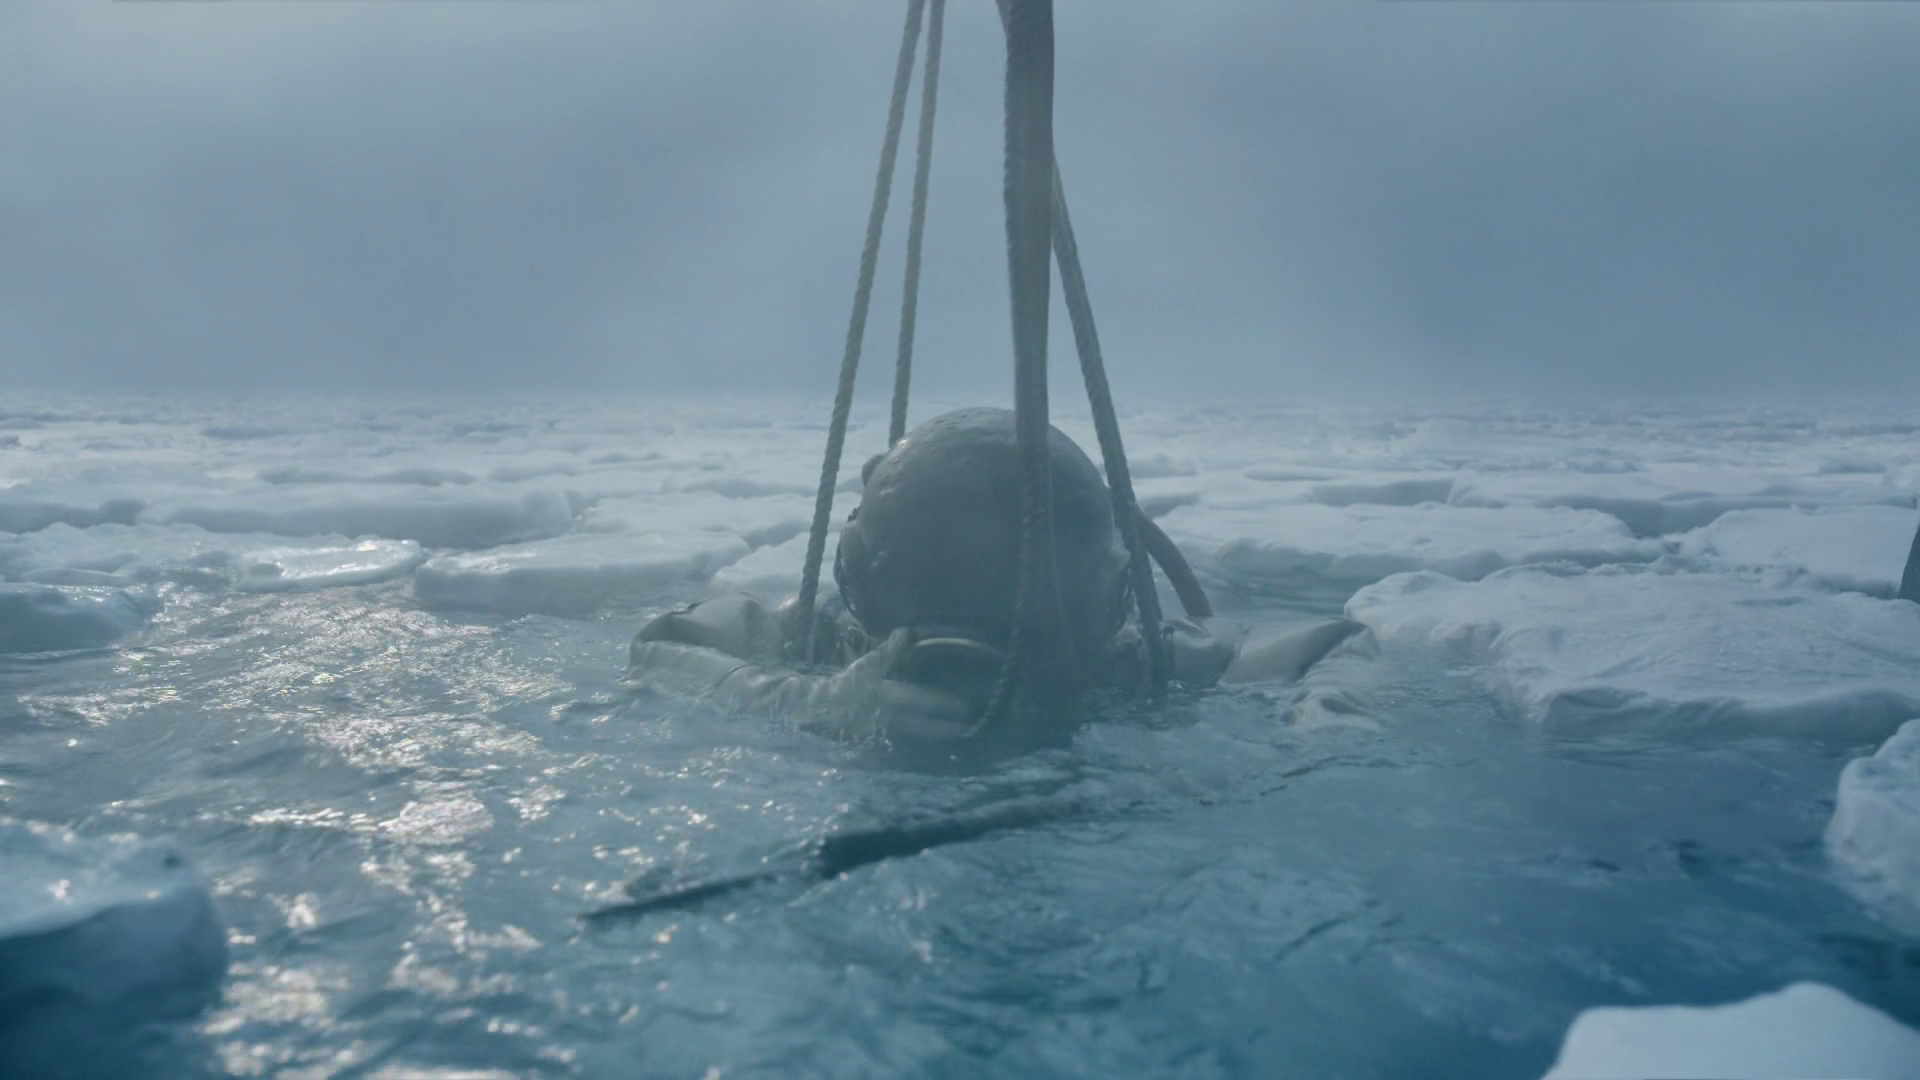 The Terror - Stagione 1 (2018) (Completa) WEBMux 1080P HEVC ITA ENG AC3 x265 mkv Vlcsnap-2018-05-01-231pog8